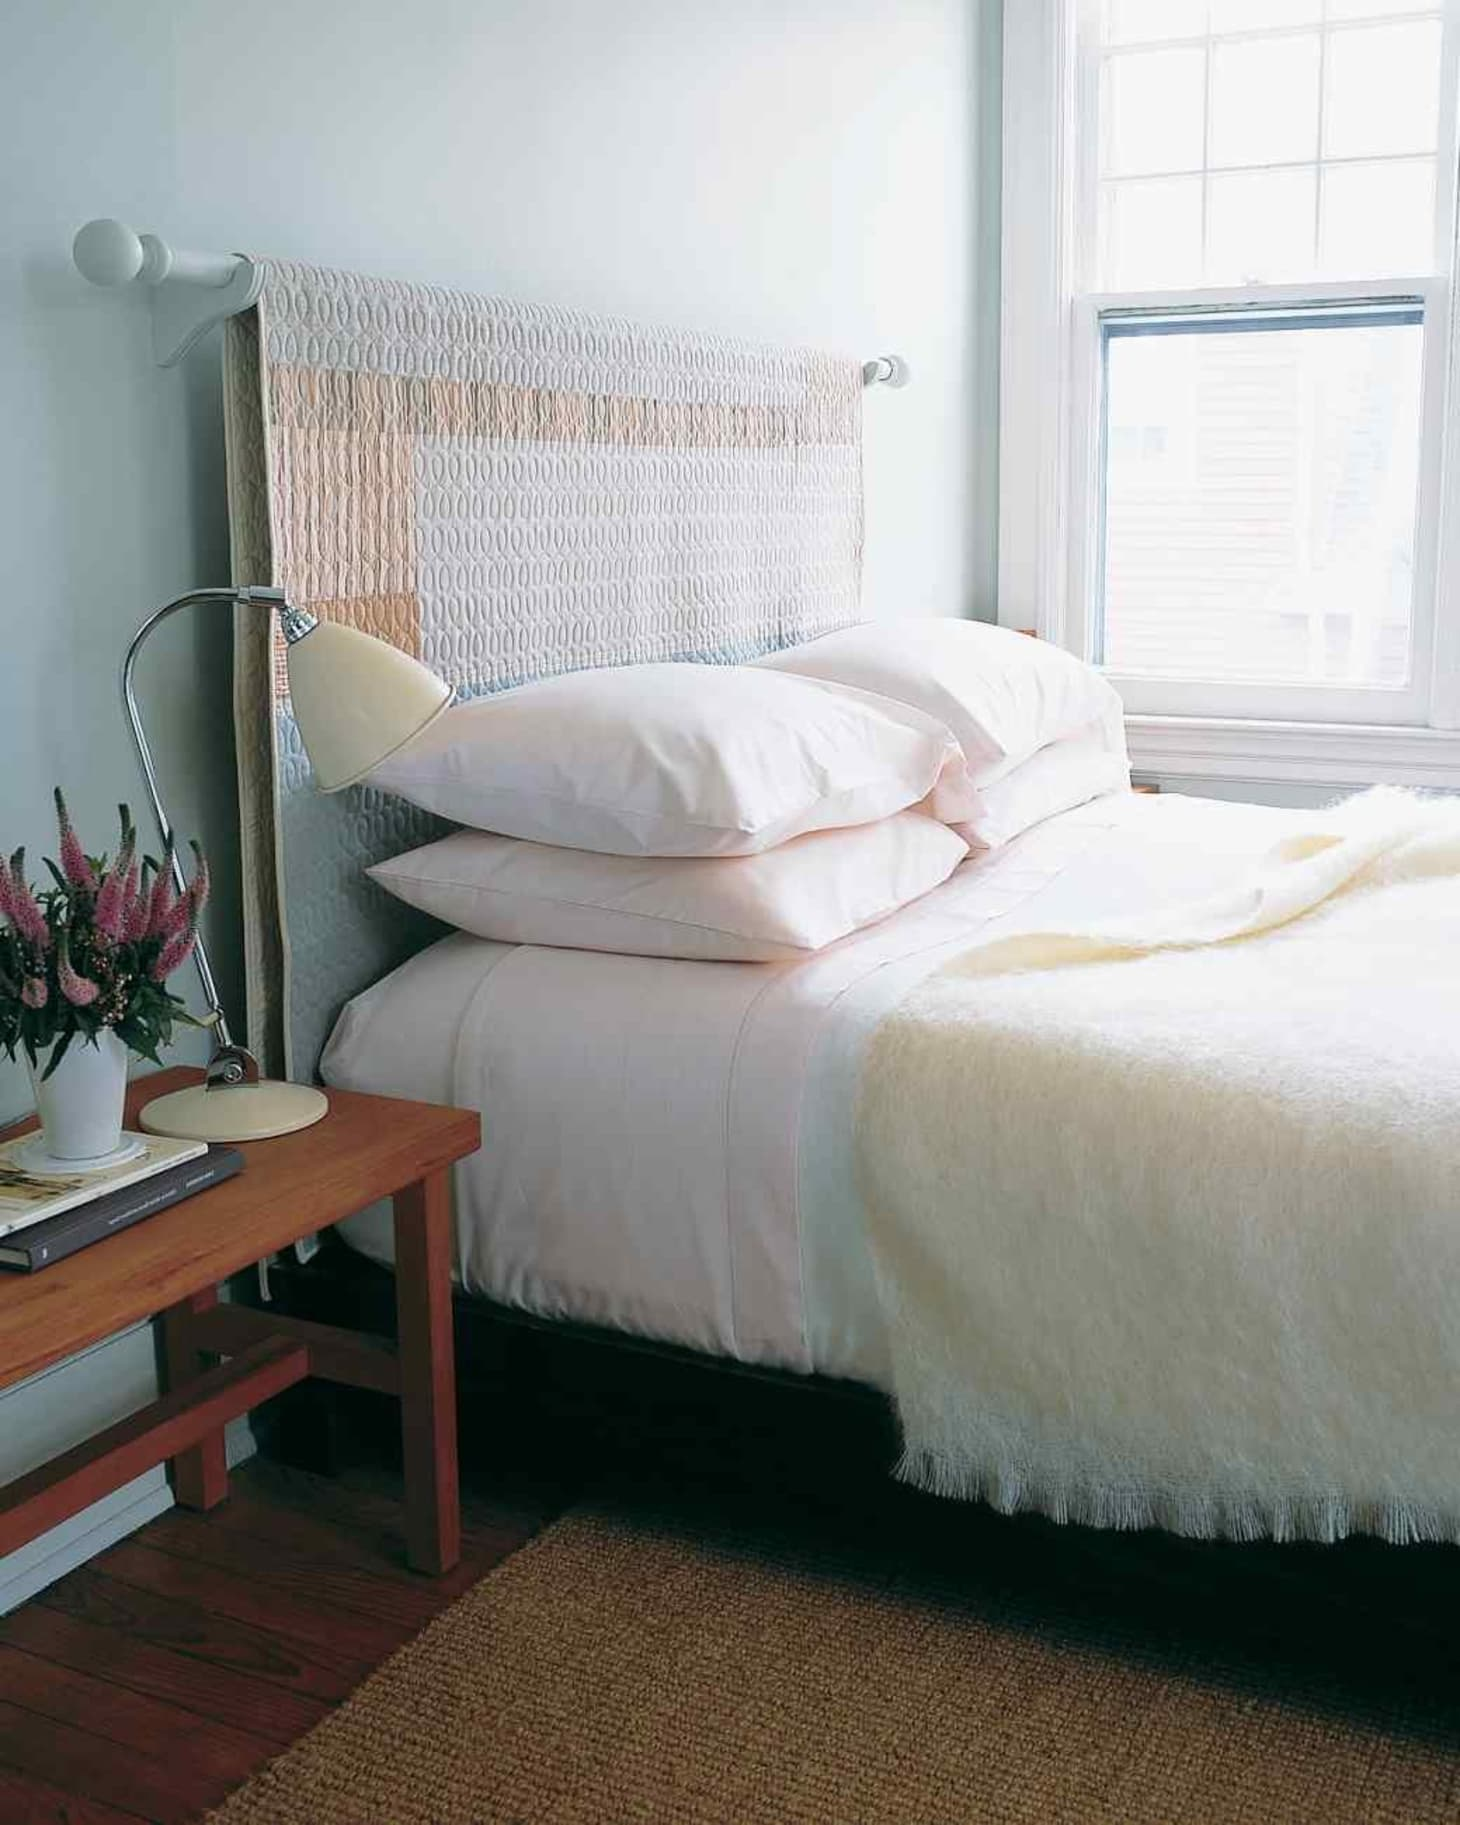 20 Easy Diy Homemade Headboard Ideas How To Make A Bed